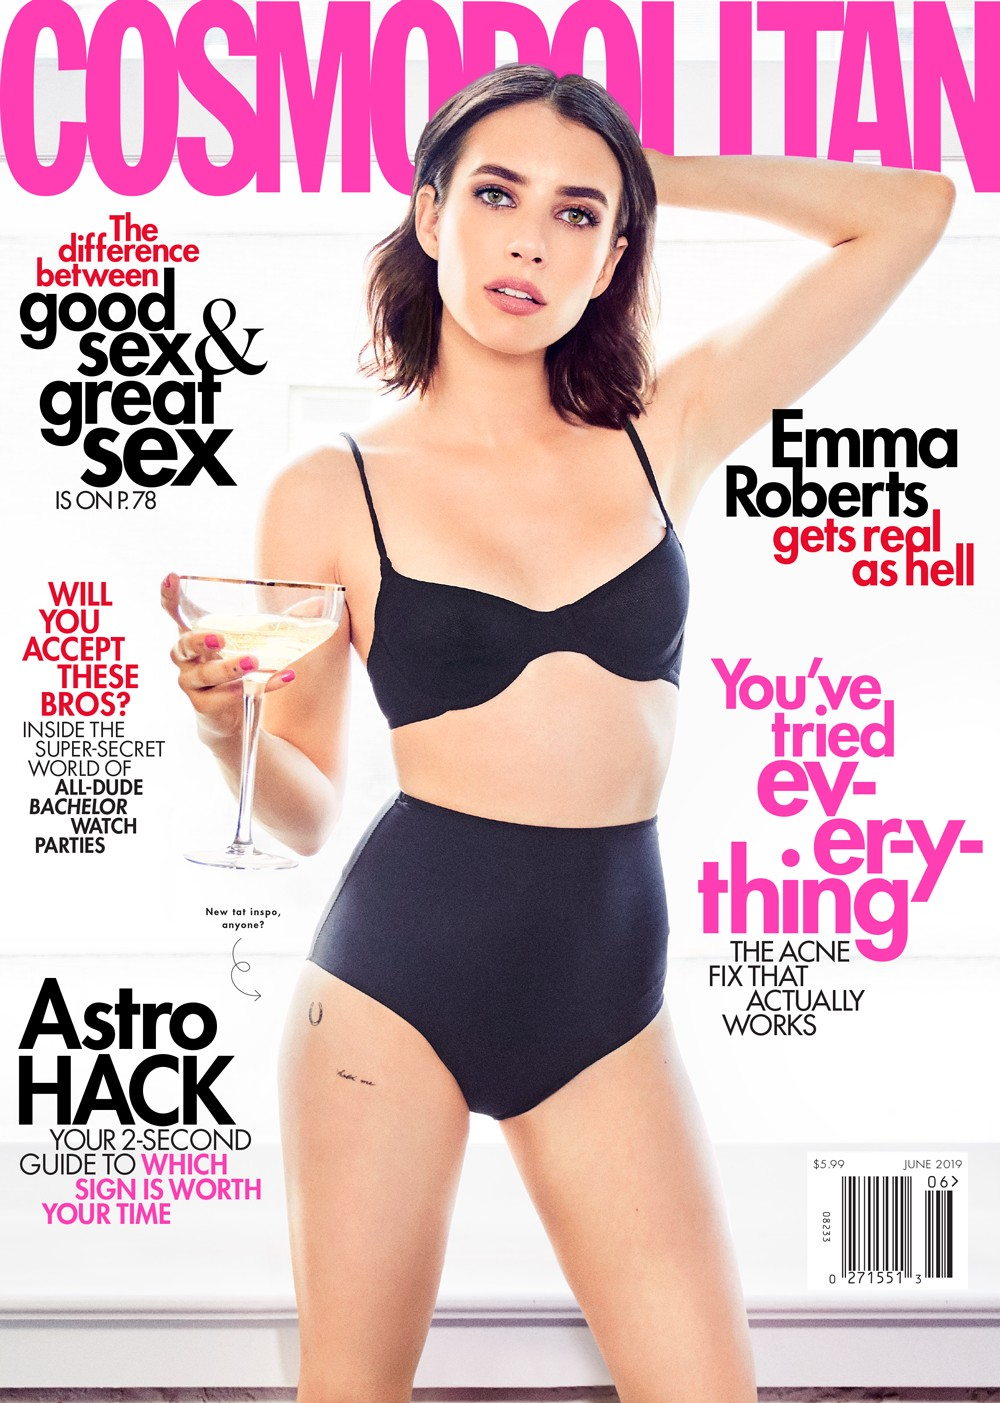 Emma Roberts Cover Photoshoot for Cosmopolitan Magazine, June 2019 3